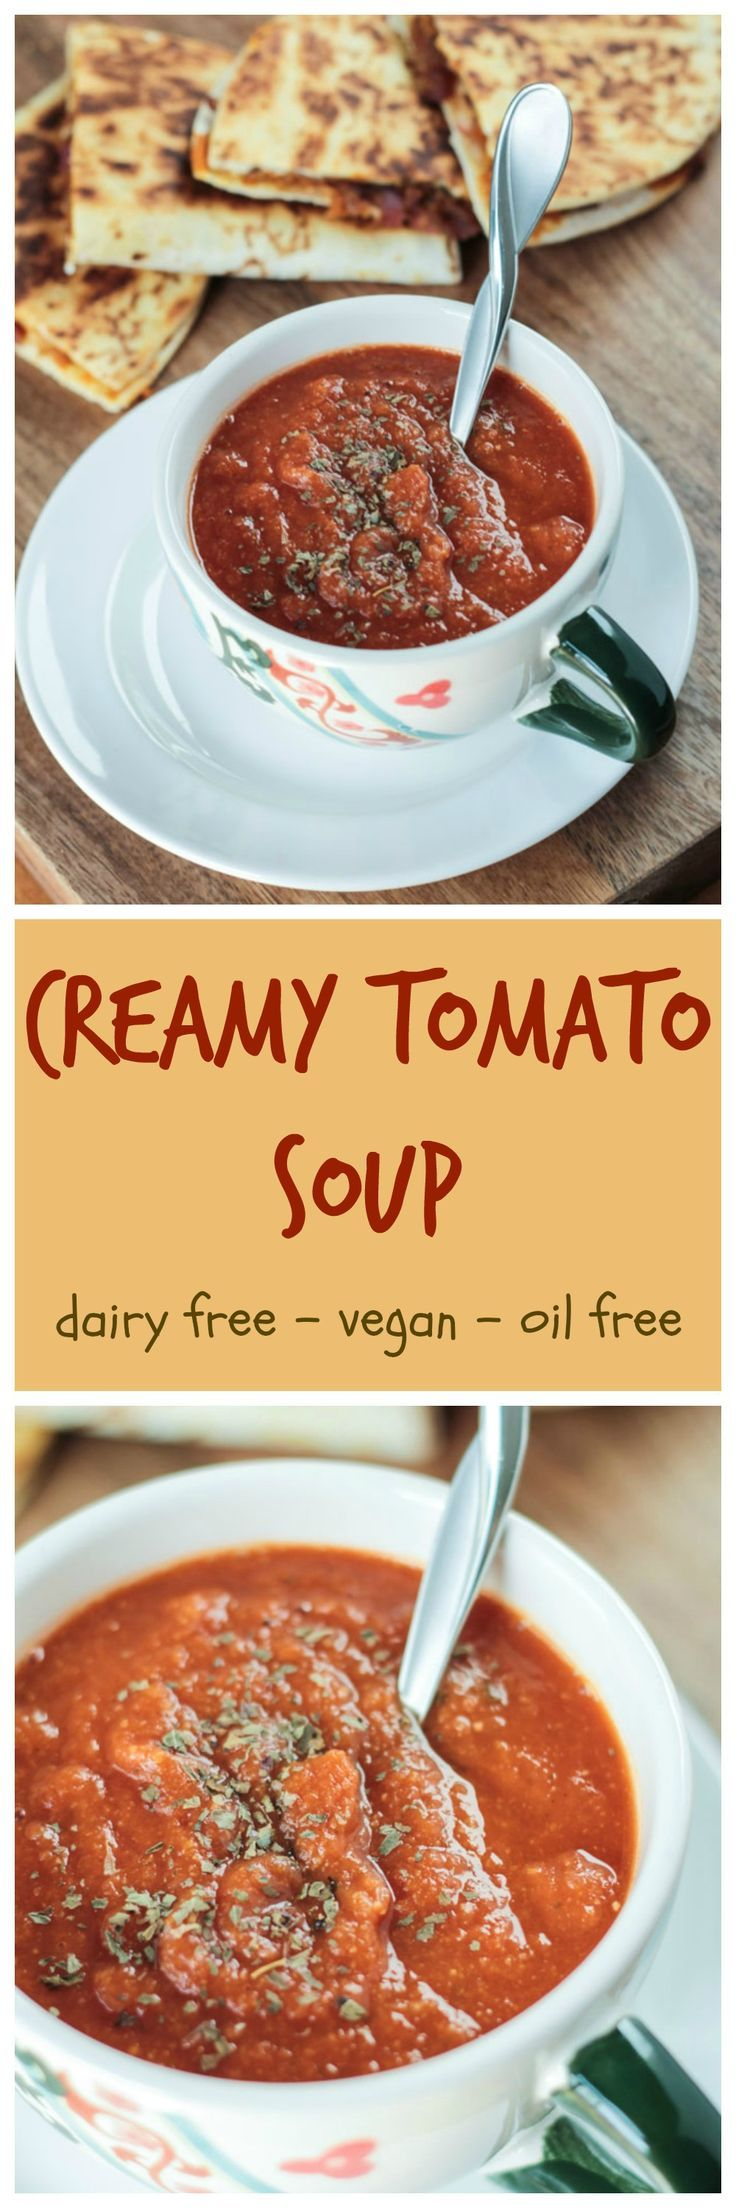 Creamy Tomato Soup - Only a few ingredients and less than 30 minutes, gets you this creamy dairy free tomato soup on your table. Made with only plant based whole foods and protein packed with pureed white beans, this is sure to be a staple around your house like it is at ours. Shown paired with my Pumpkin, Apple and Caramelized Onion Quesadillas which are also on the blog at www.veggieinspiredjourney.com.